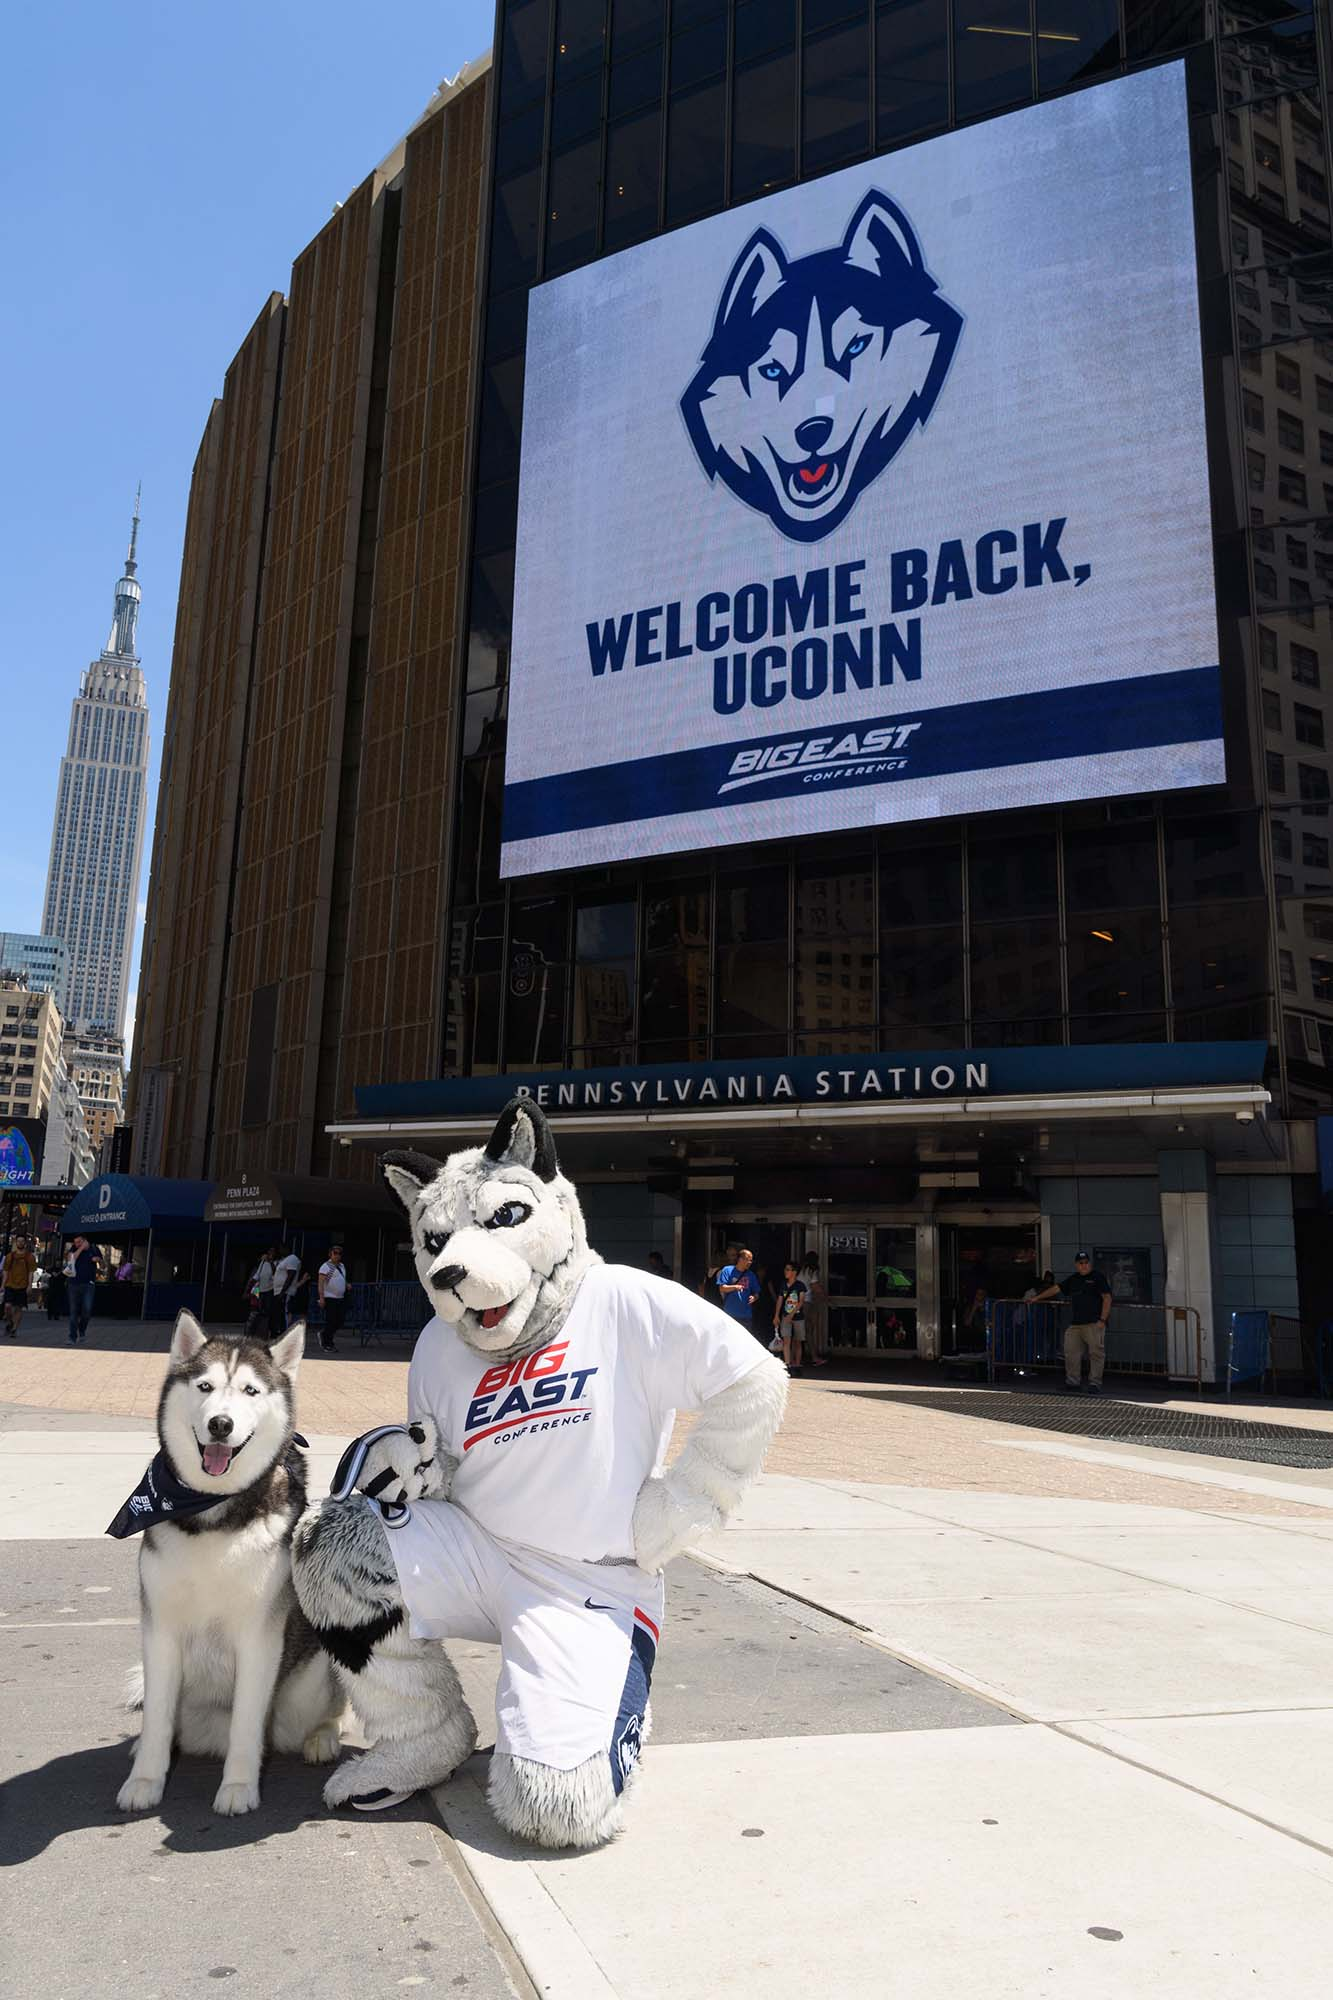 Jonathan the husky with mascot in front of giant LED sign in Pennsylvania Station, NYC